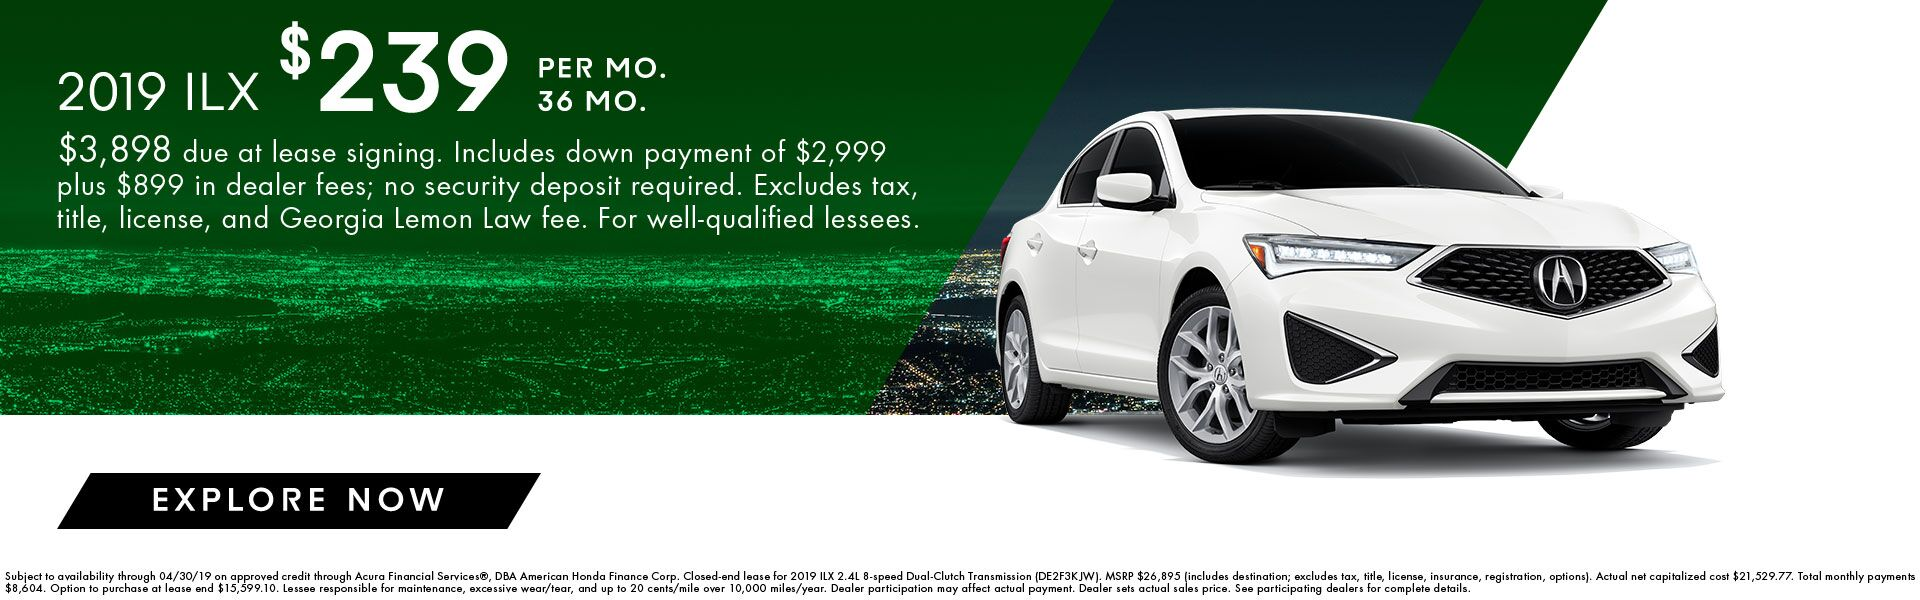 2019 ILX Incentives at Acura of Augusta